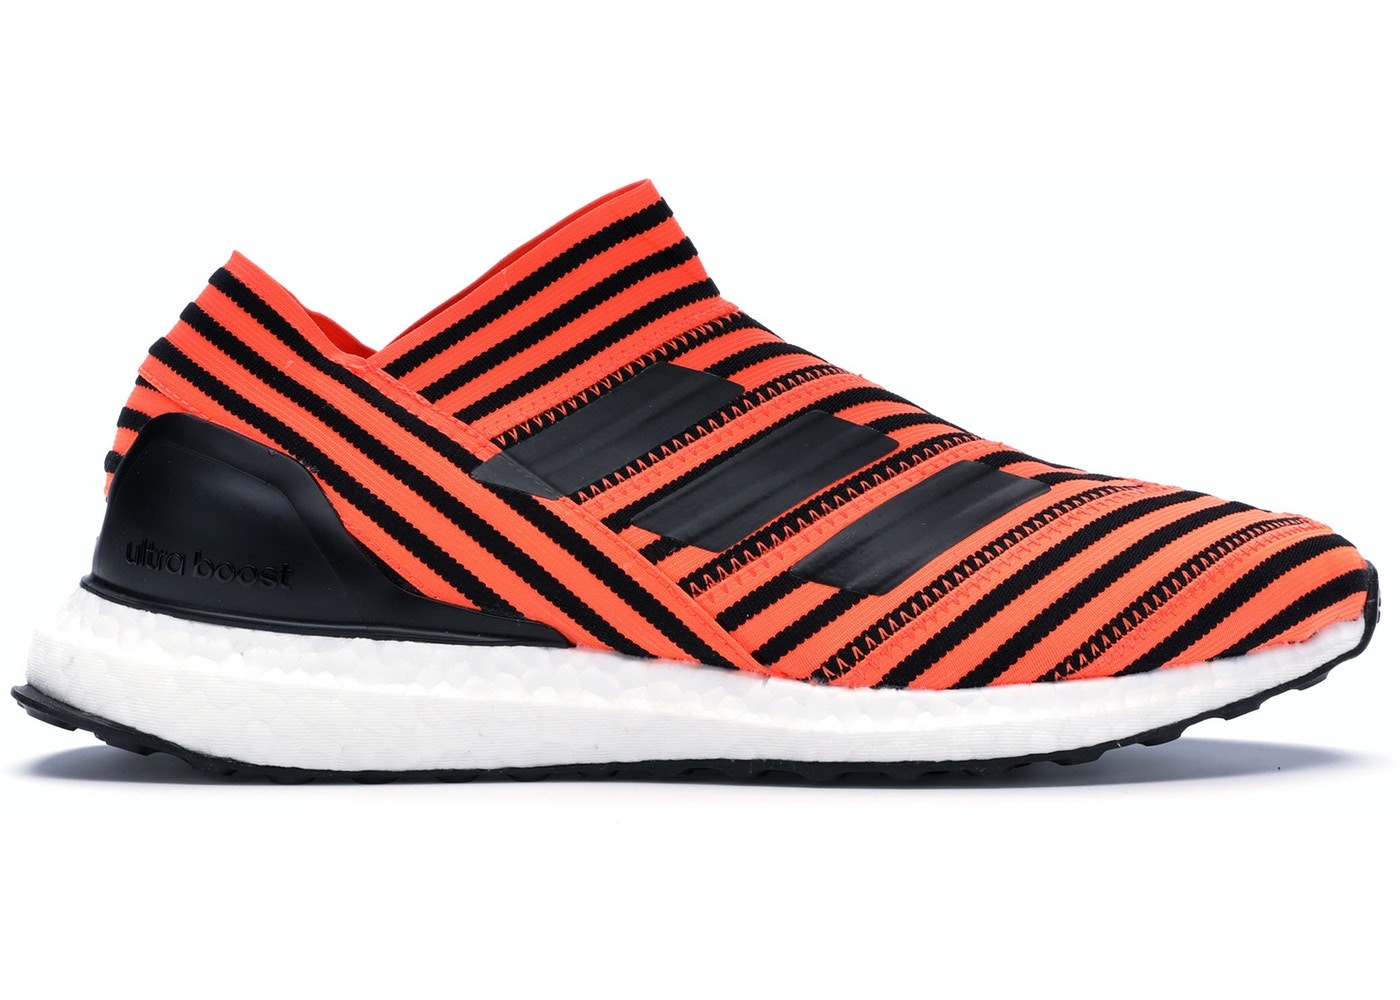 e407cd1ec3d4 adidas Nemeziz Tango 17 Ultra Boost Solar Orange - CG3659